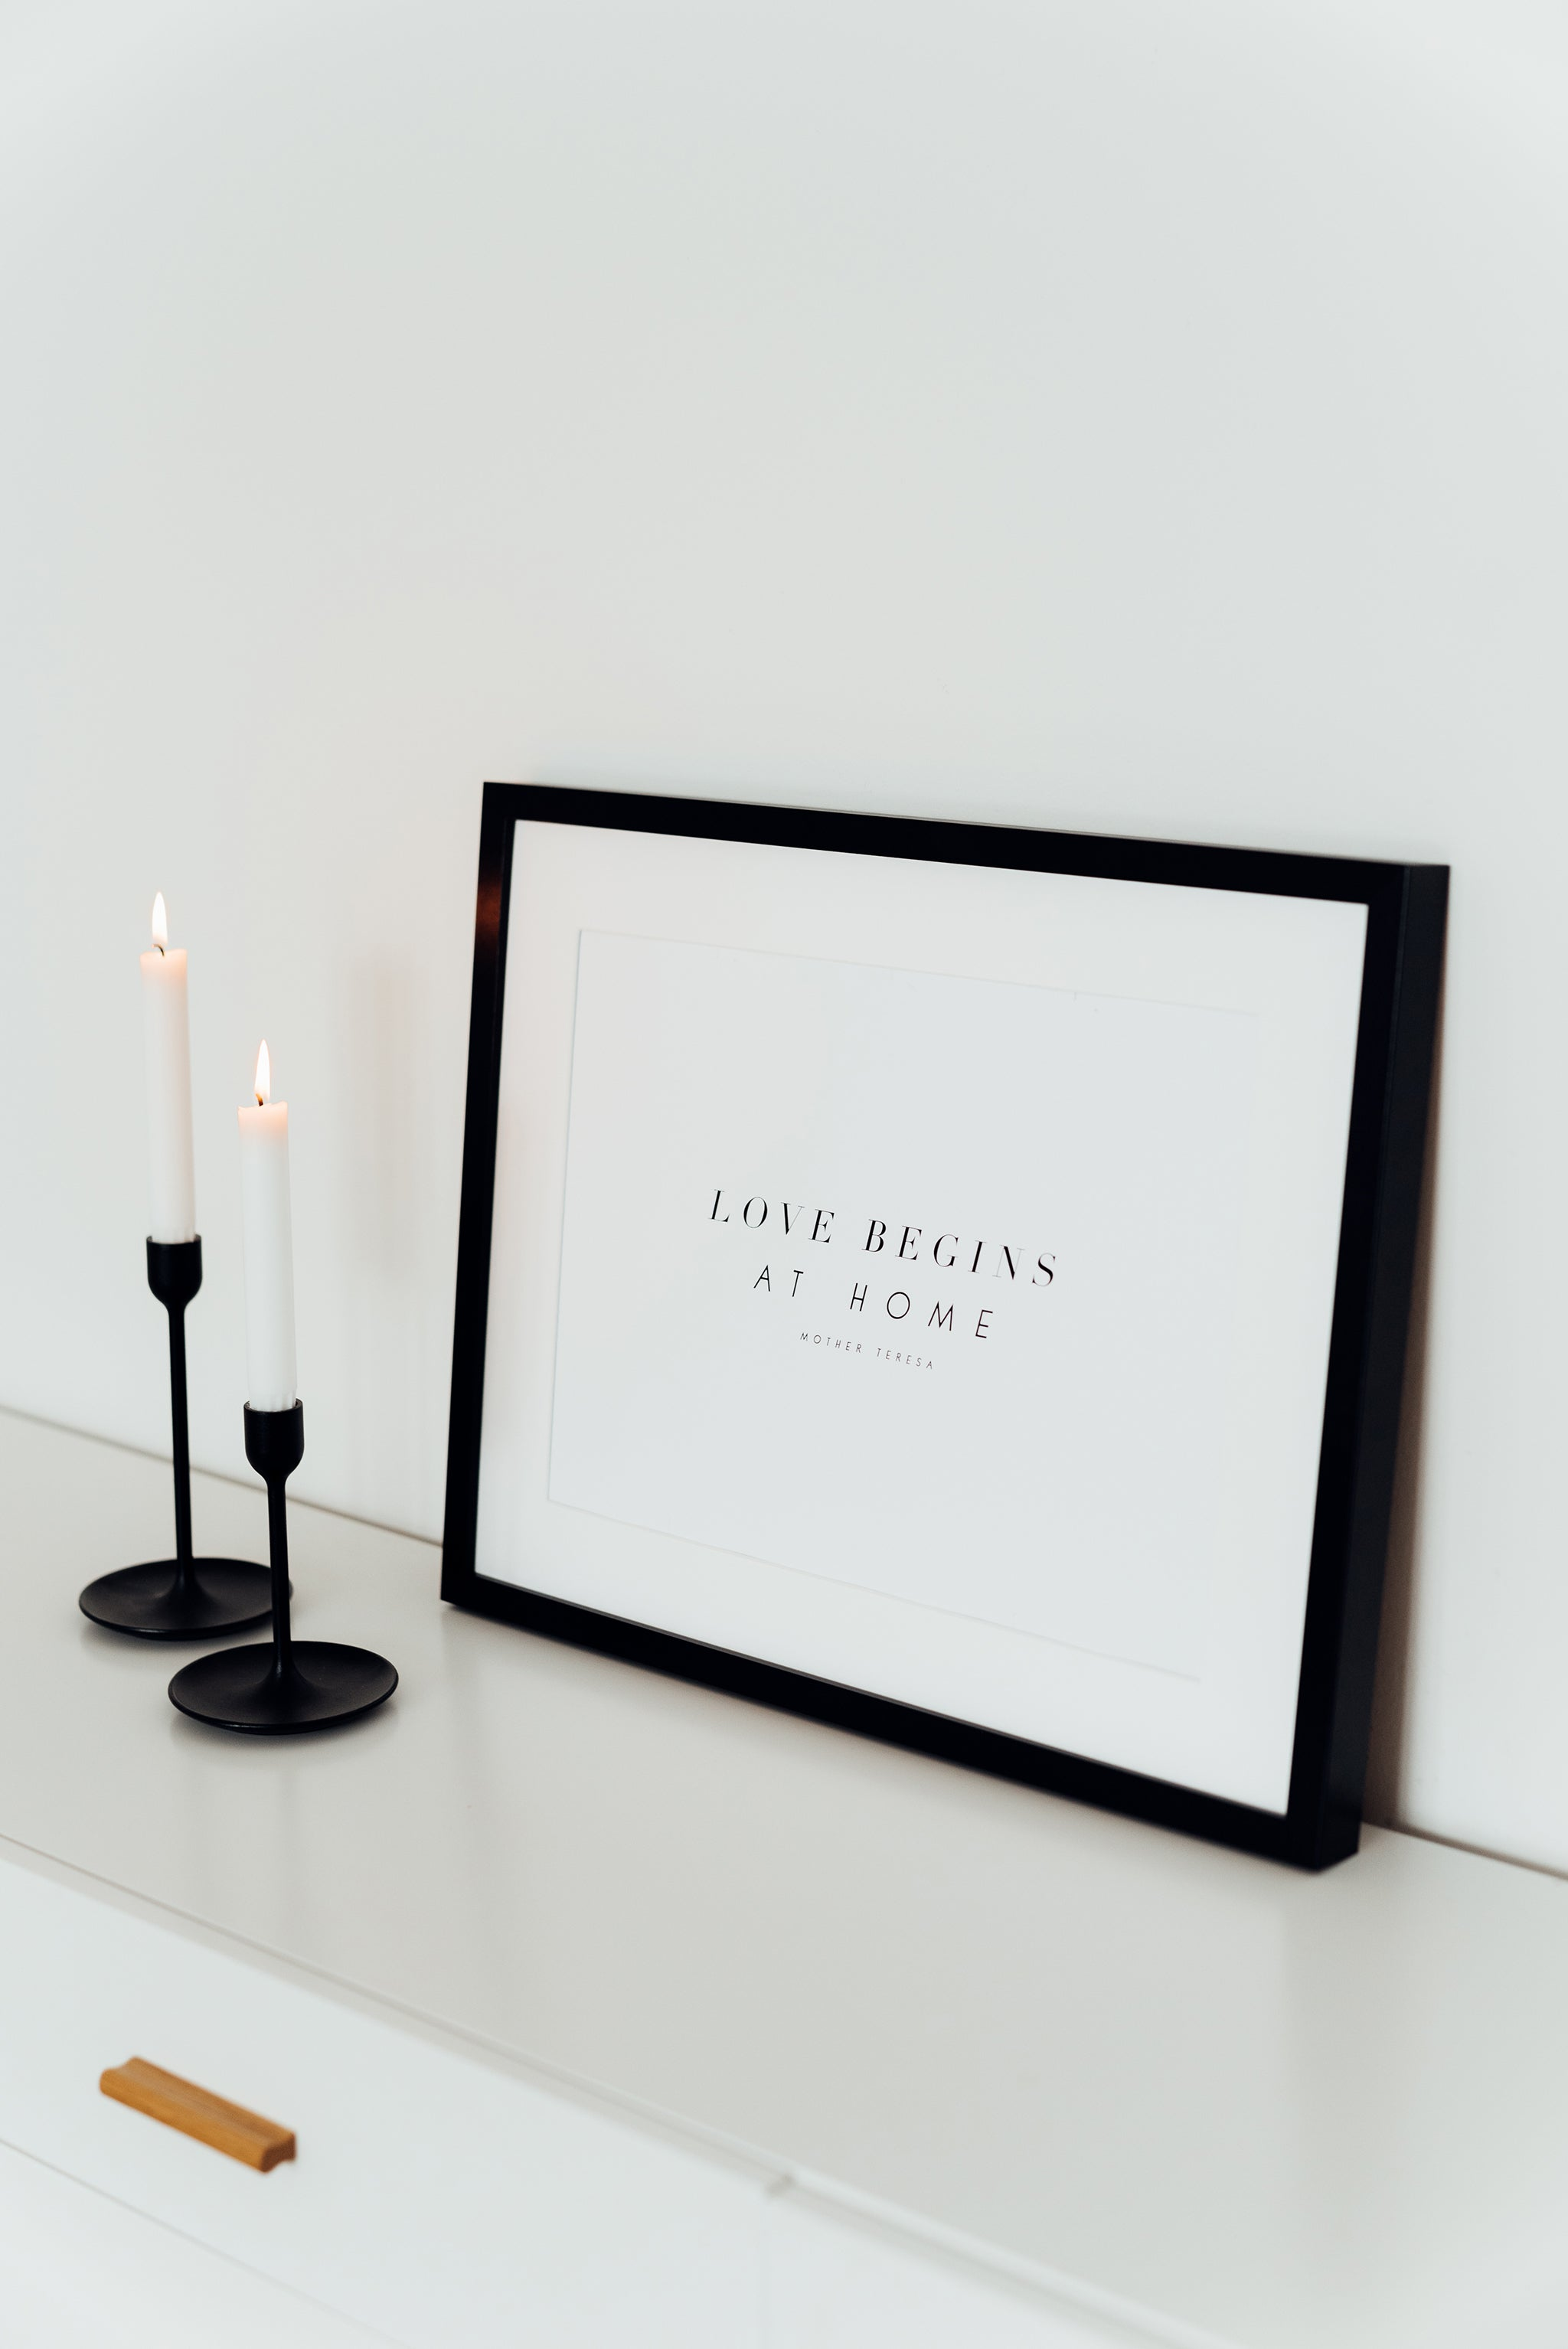 Love begins at home - A3 Poster